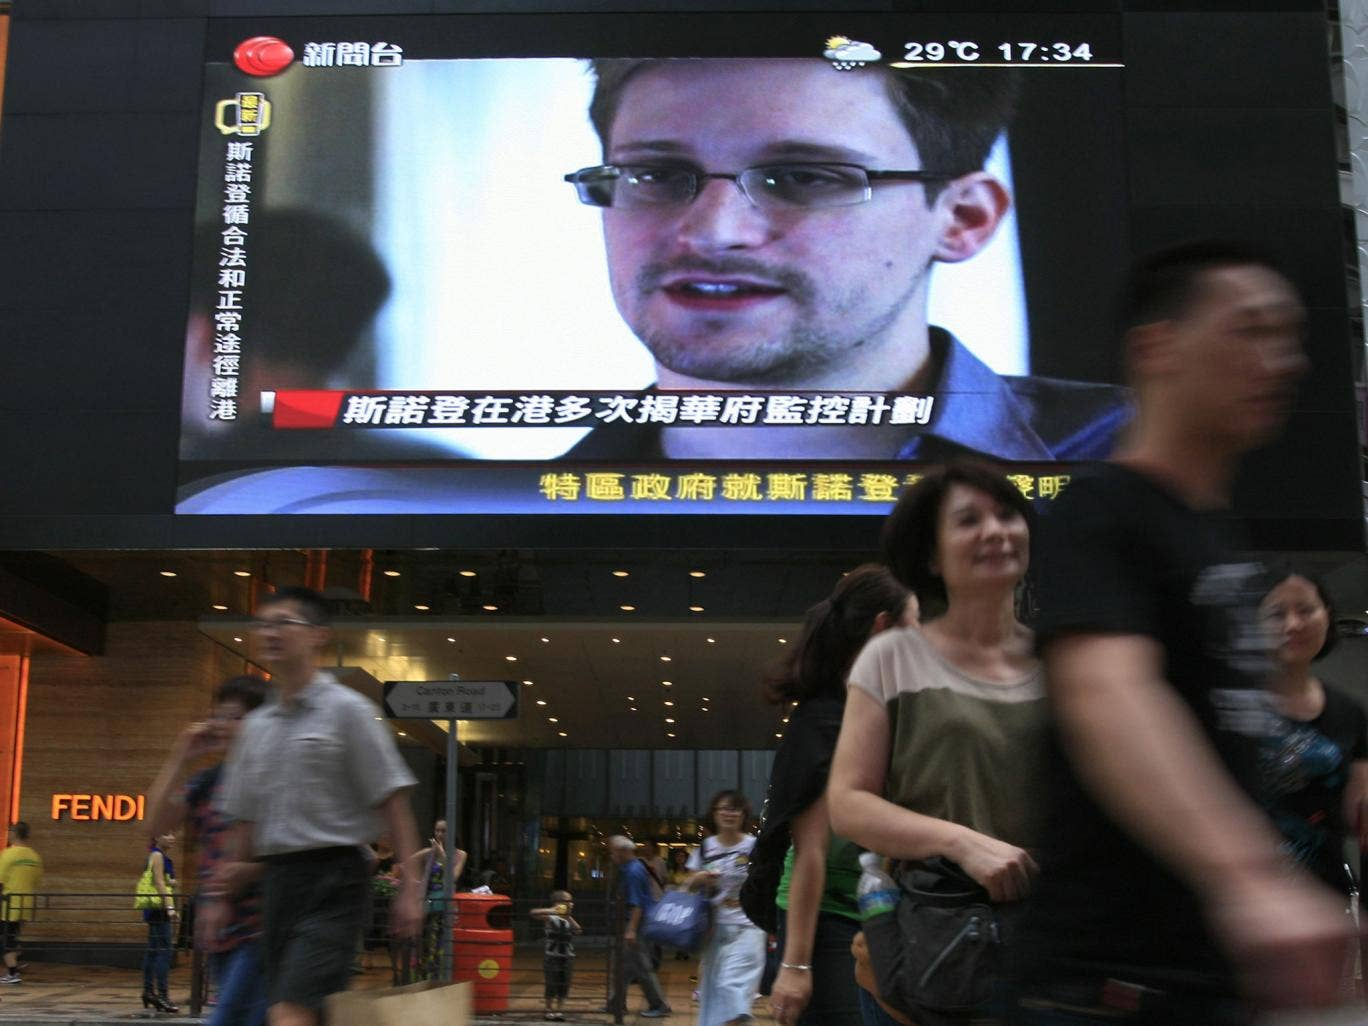 A TV screen shows a news report about Edward Snowden in Hong Kong